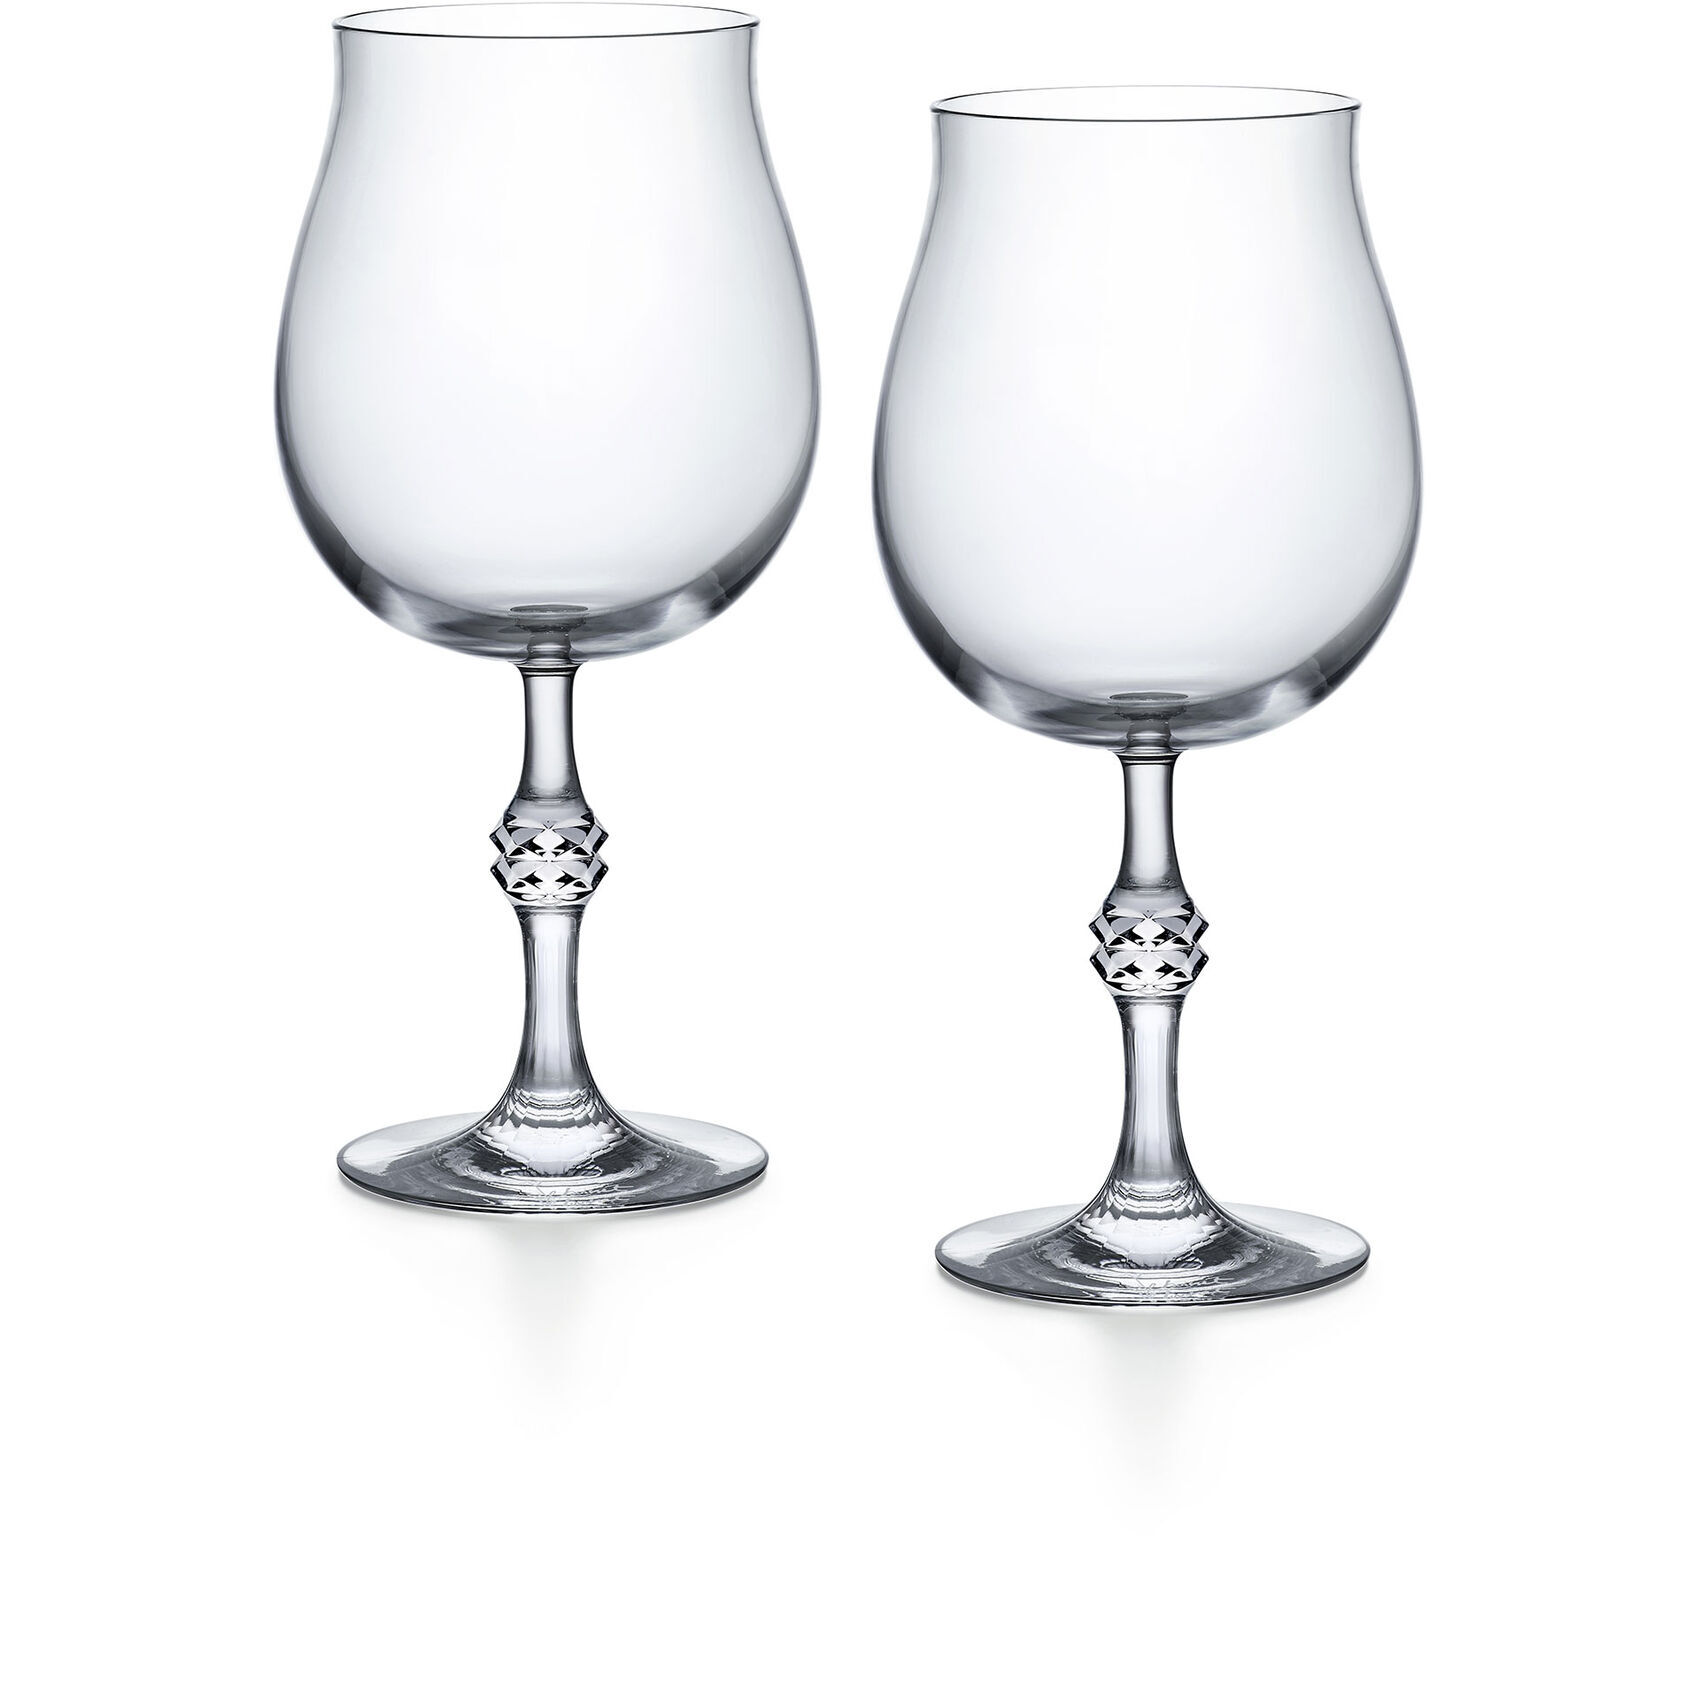 Jean-Charles Boisset Collection Baccarat Crystal 2-pk Glasses